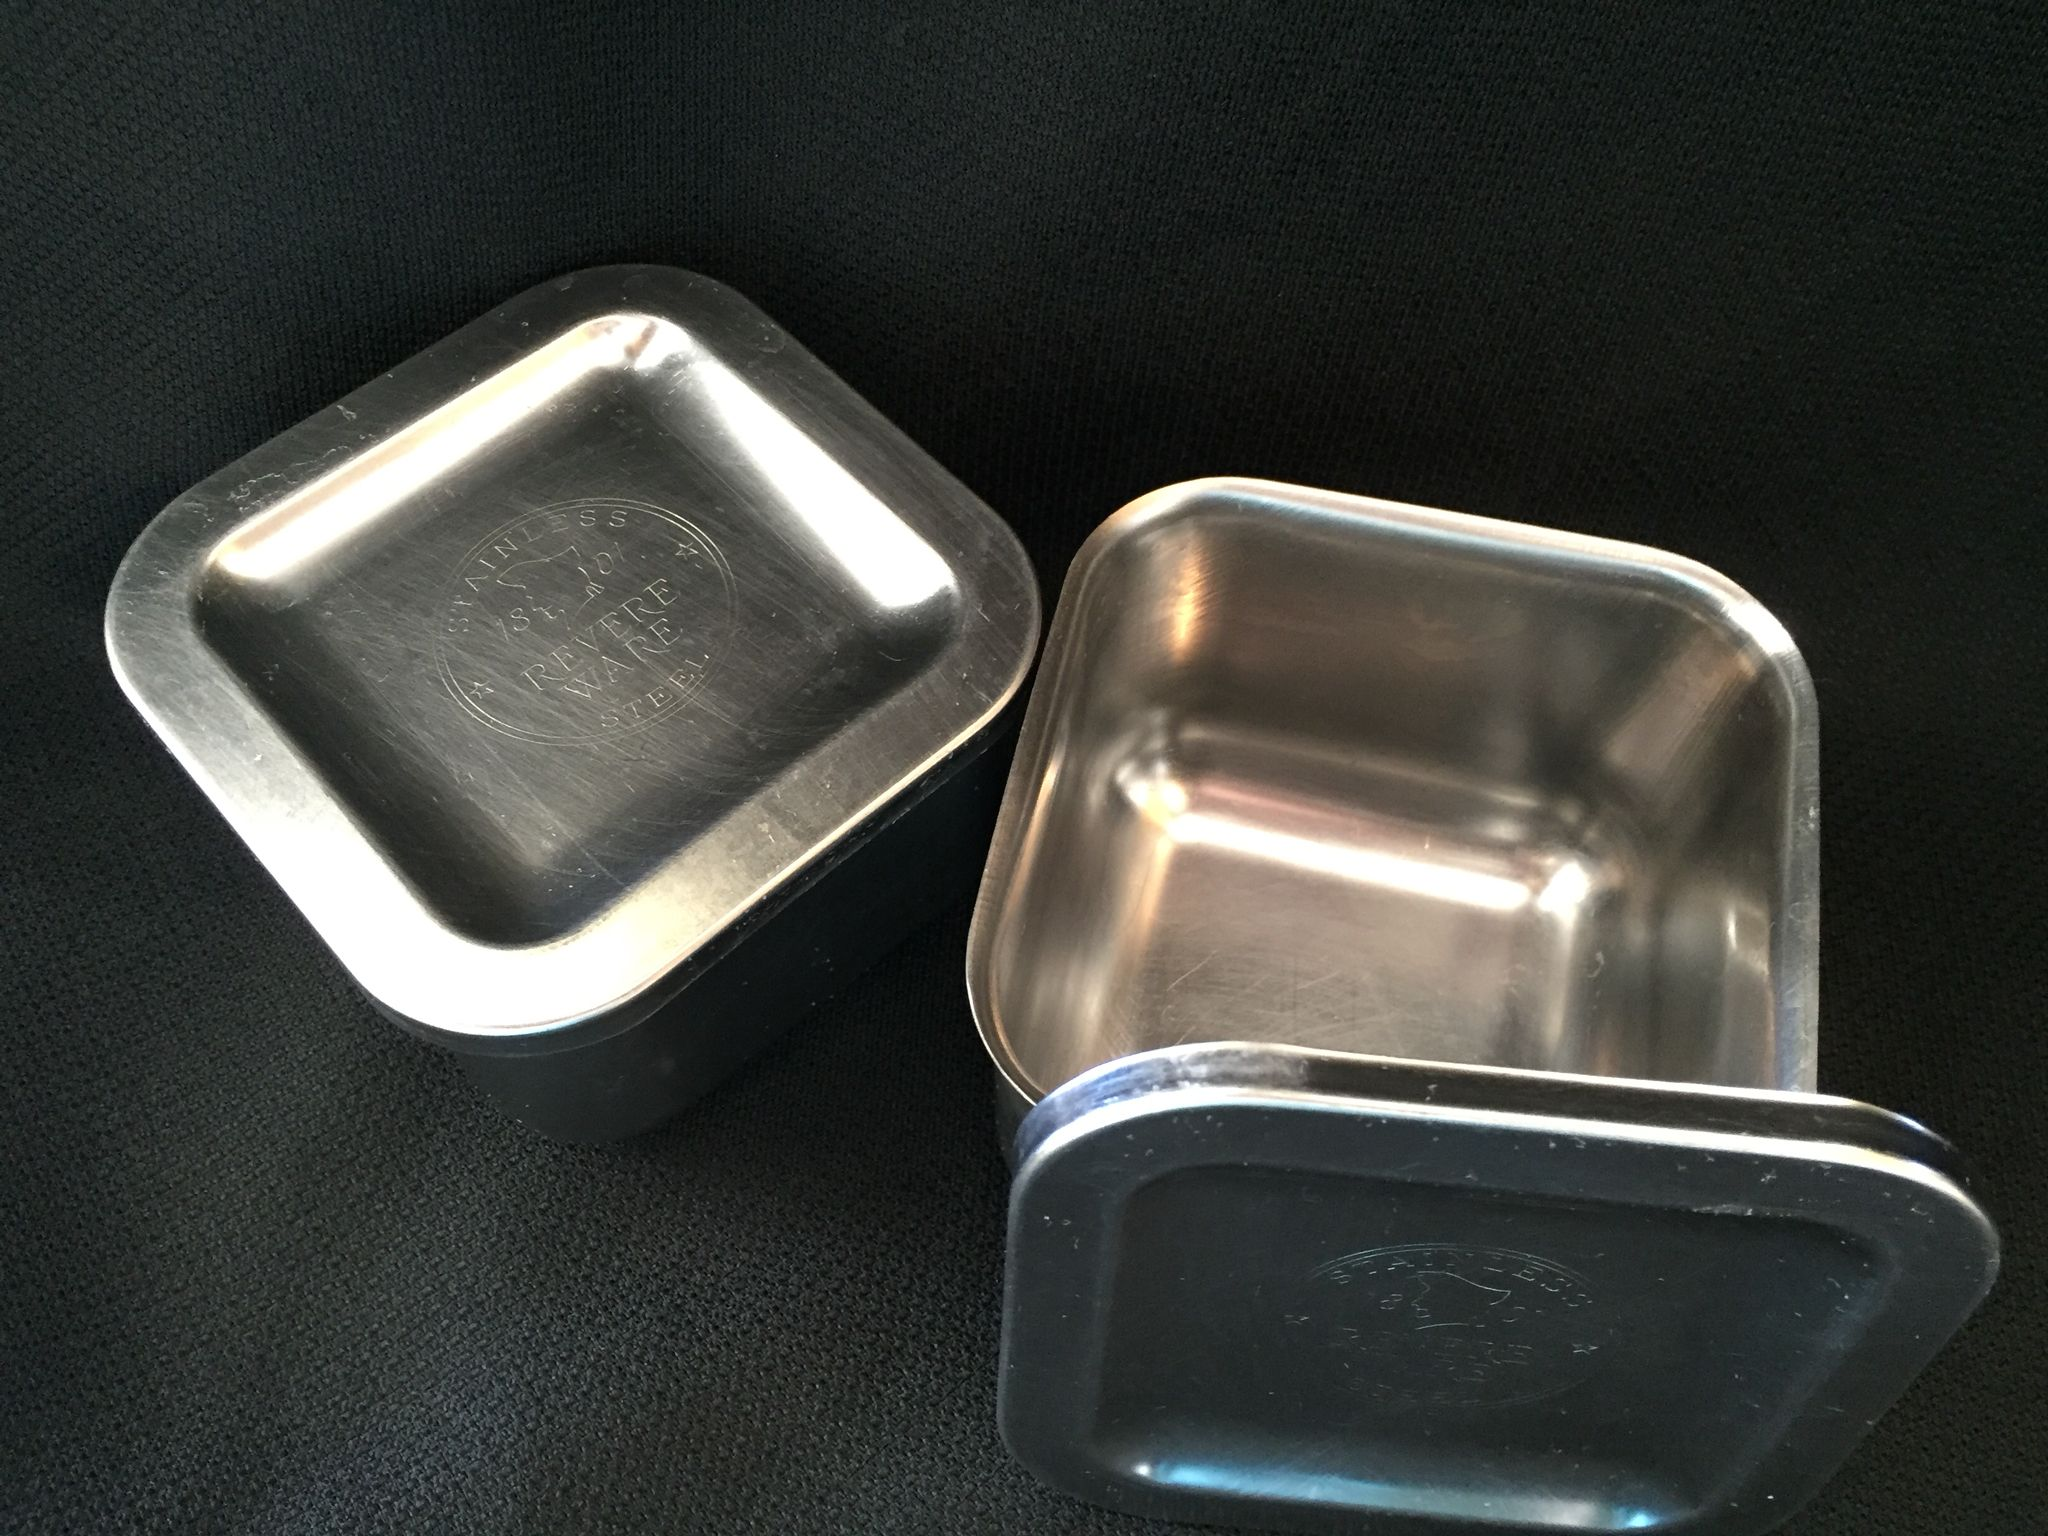 Vintage 1950 Revere Ware Refrigerator Stainless Steel Storage Containers